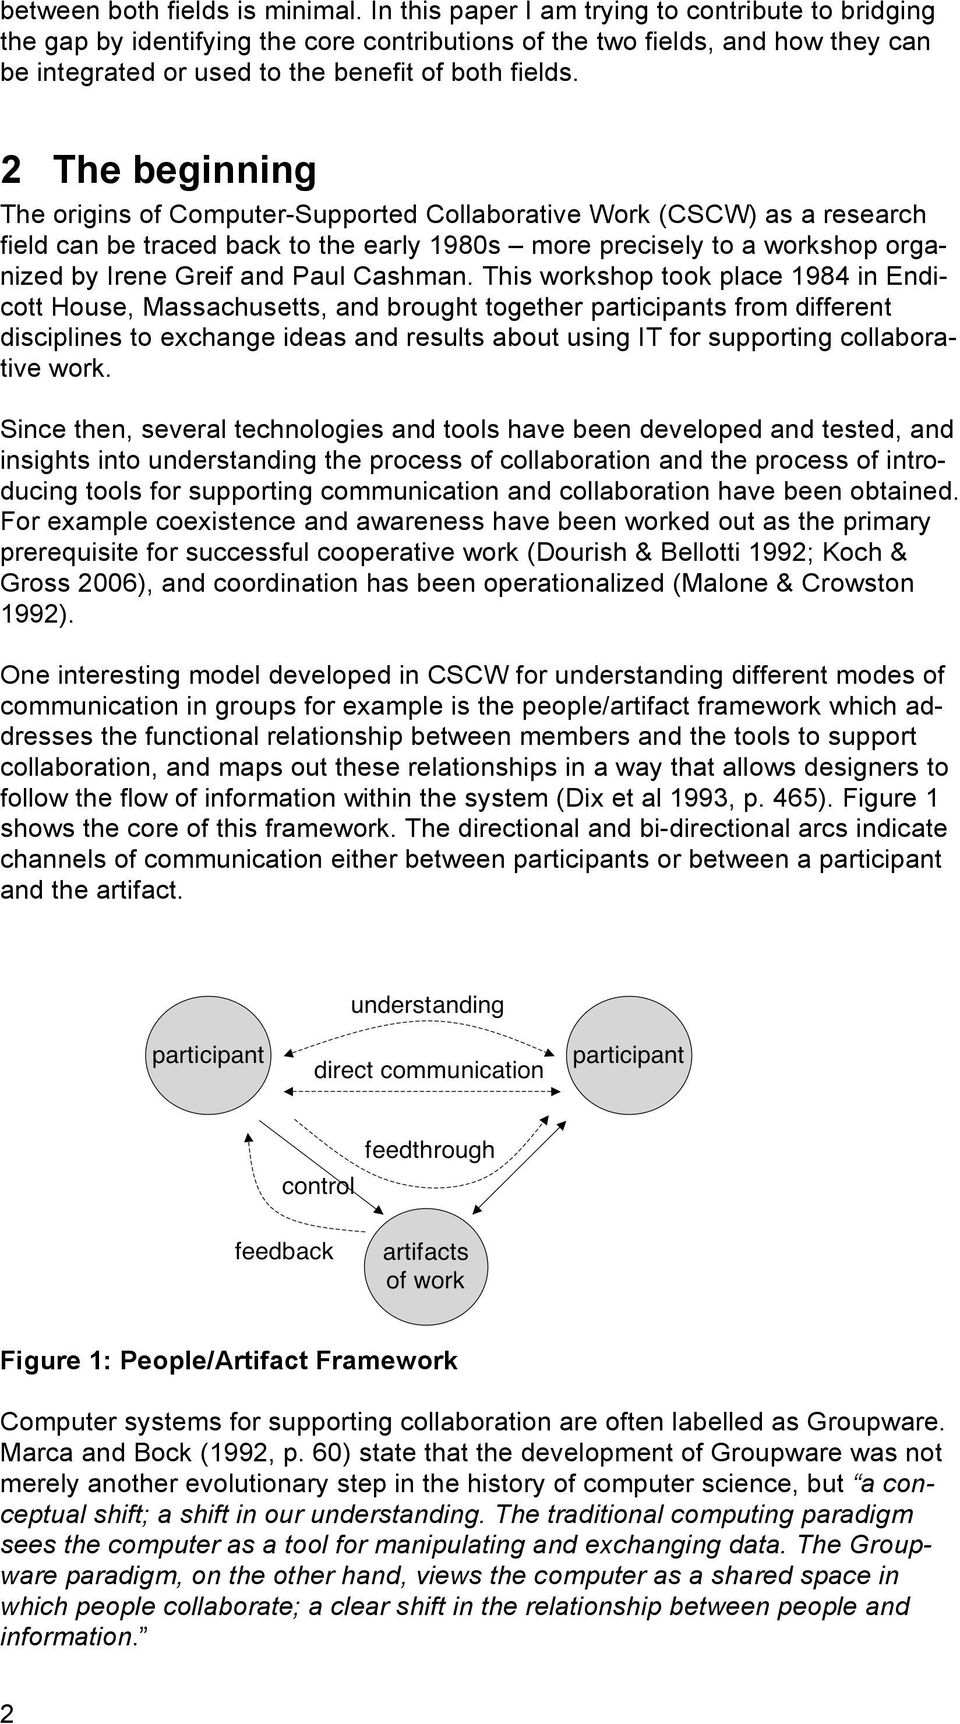 2 The beginning The origins of Computer-Supported Collaborative Work (CSCW) as a research field can be traced back to the early 1980s more precisely to a workshop organized by Irene Greif and Paul